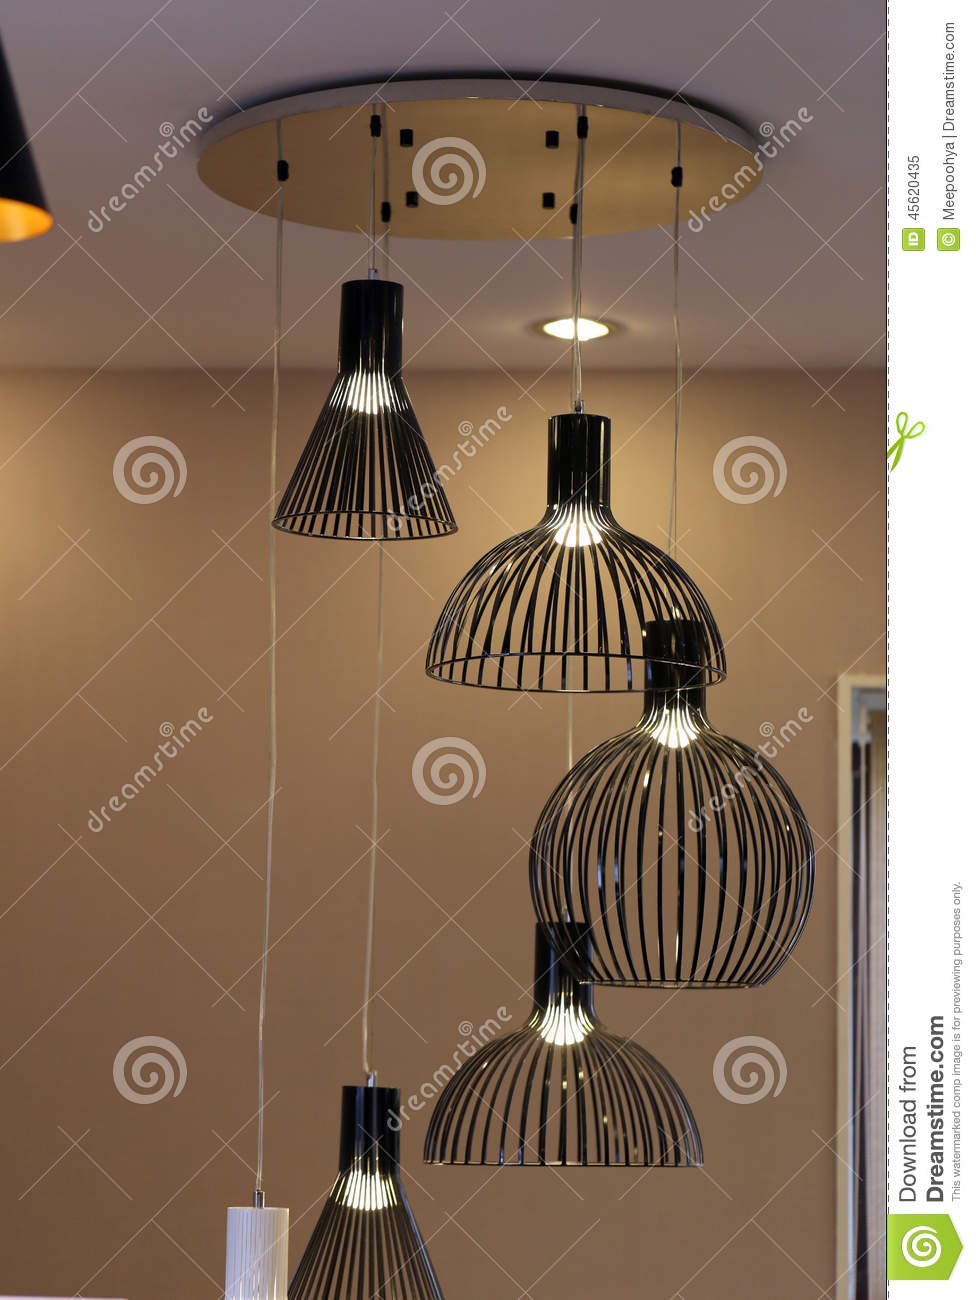 moderne zwarte lampen stock foto afbeelding 45620435. Black Bedroom Furniture Sets. Home Design Ideas